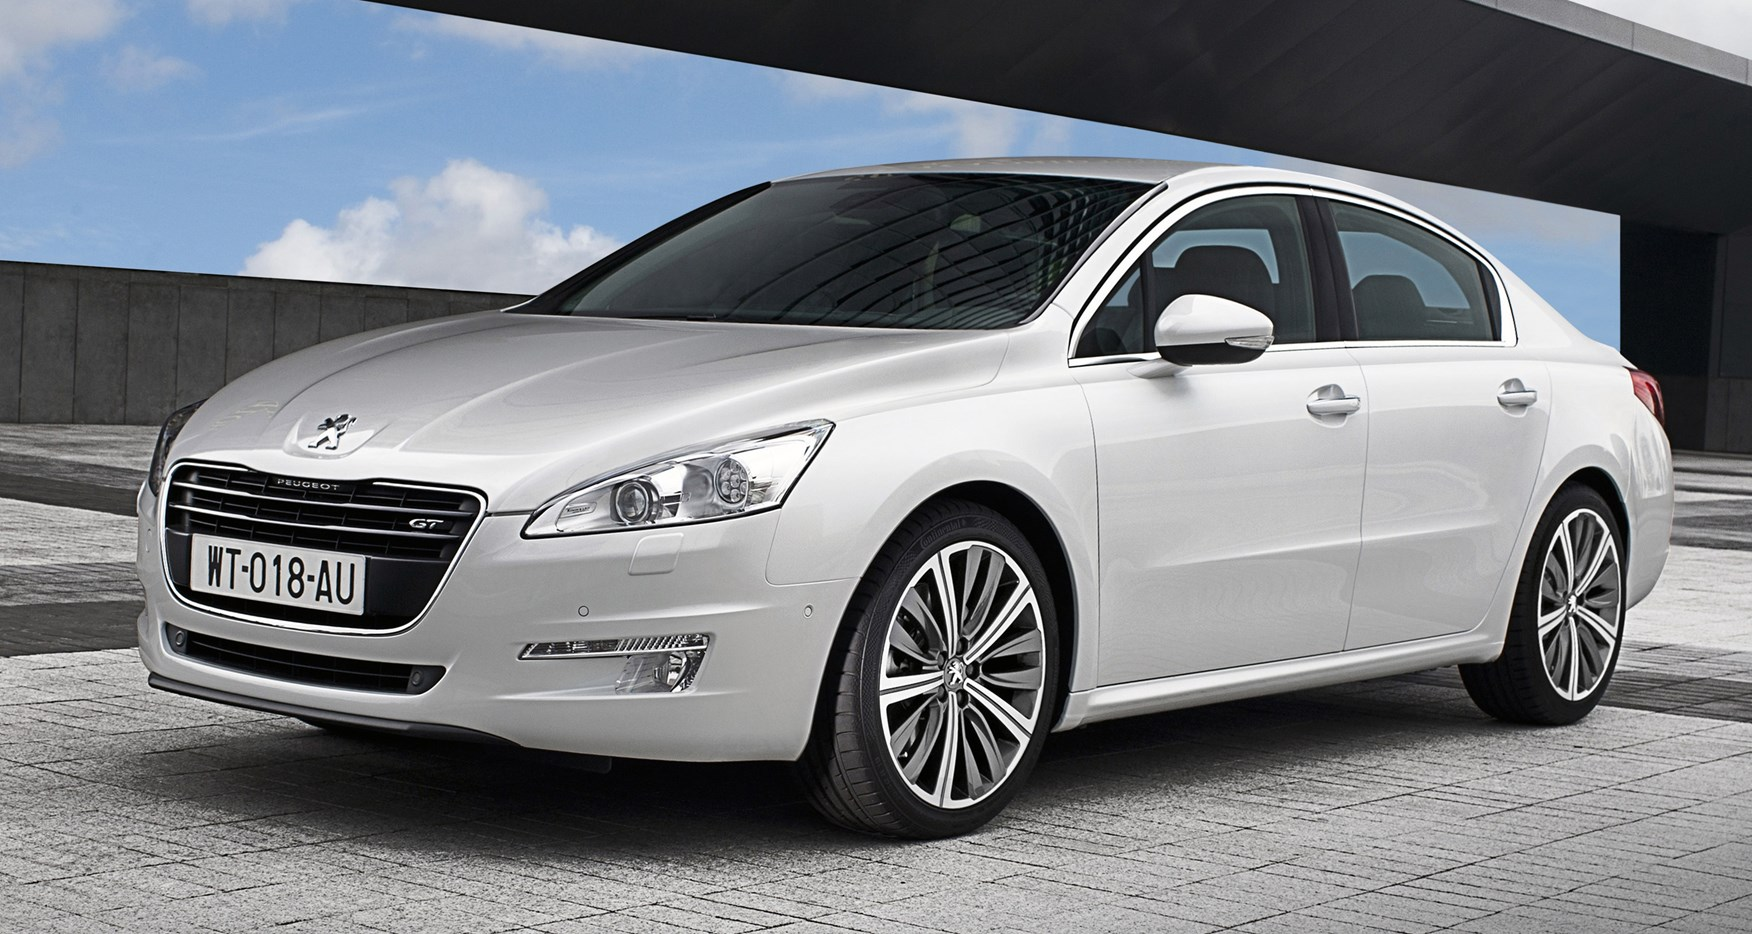 Peugeot 508 Saloon Review (2011 - ) | Parkers